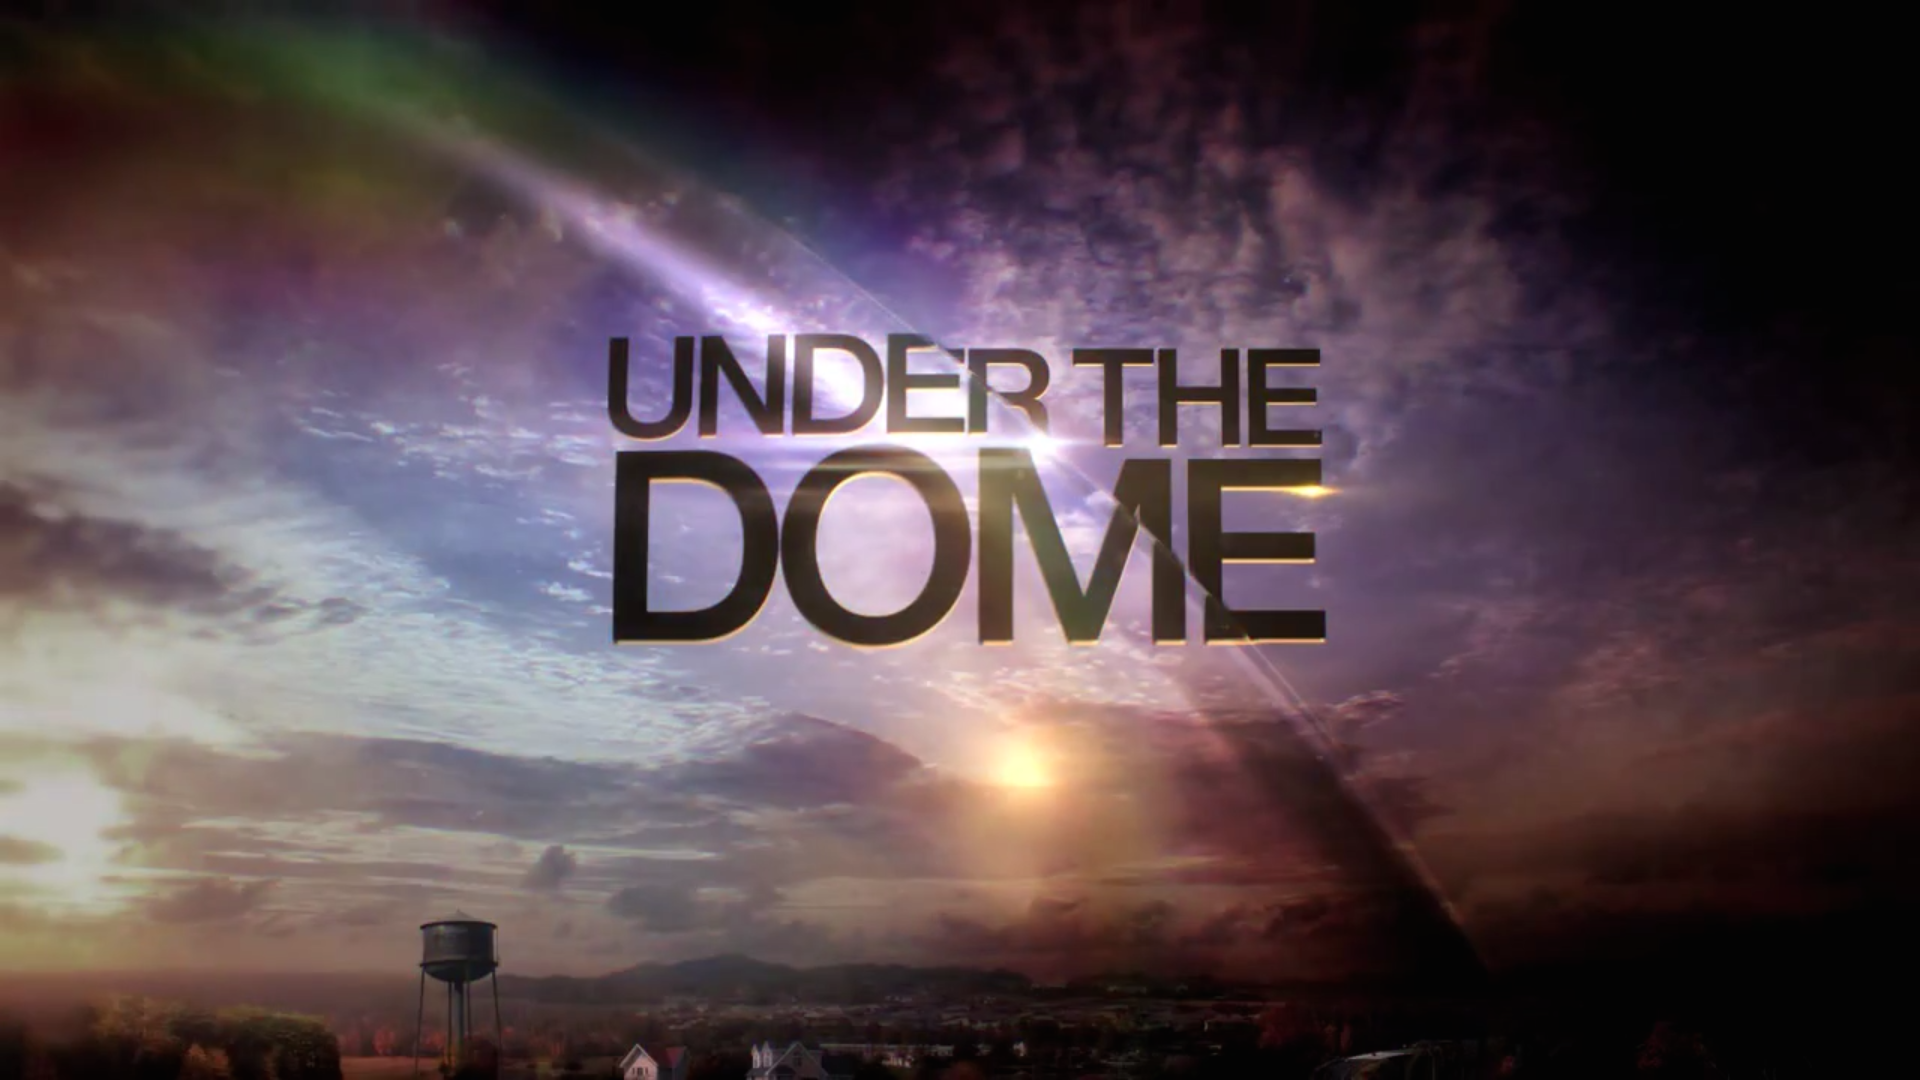 under the dome season 2 torrent kickass